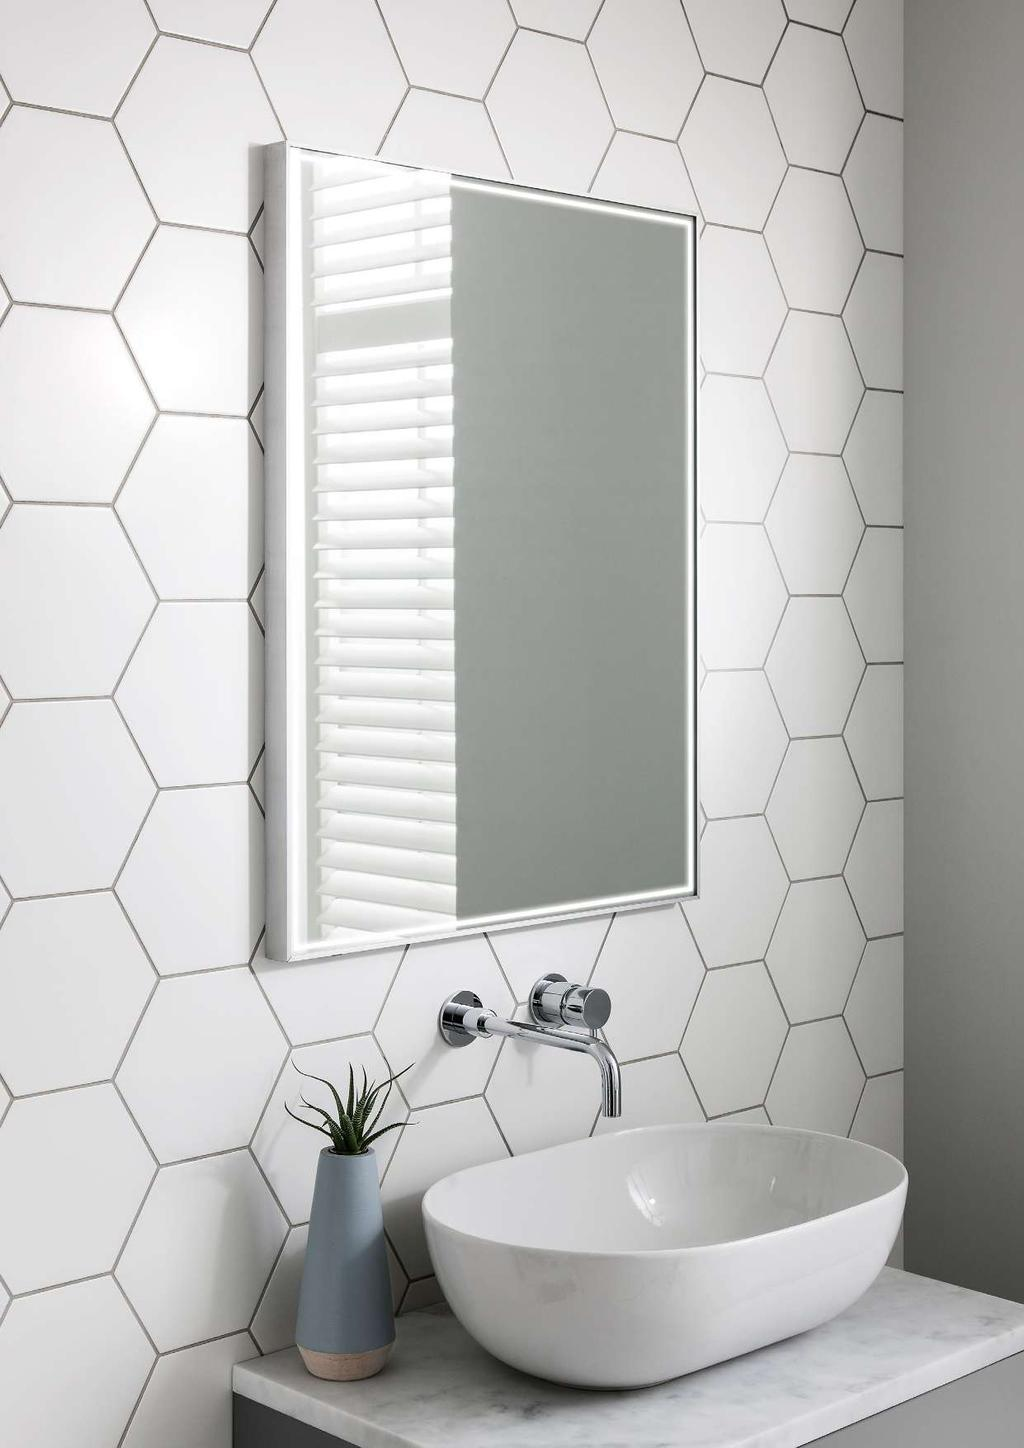 UP TO 50% MIRRORS Finishing touches DUNE